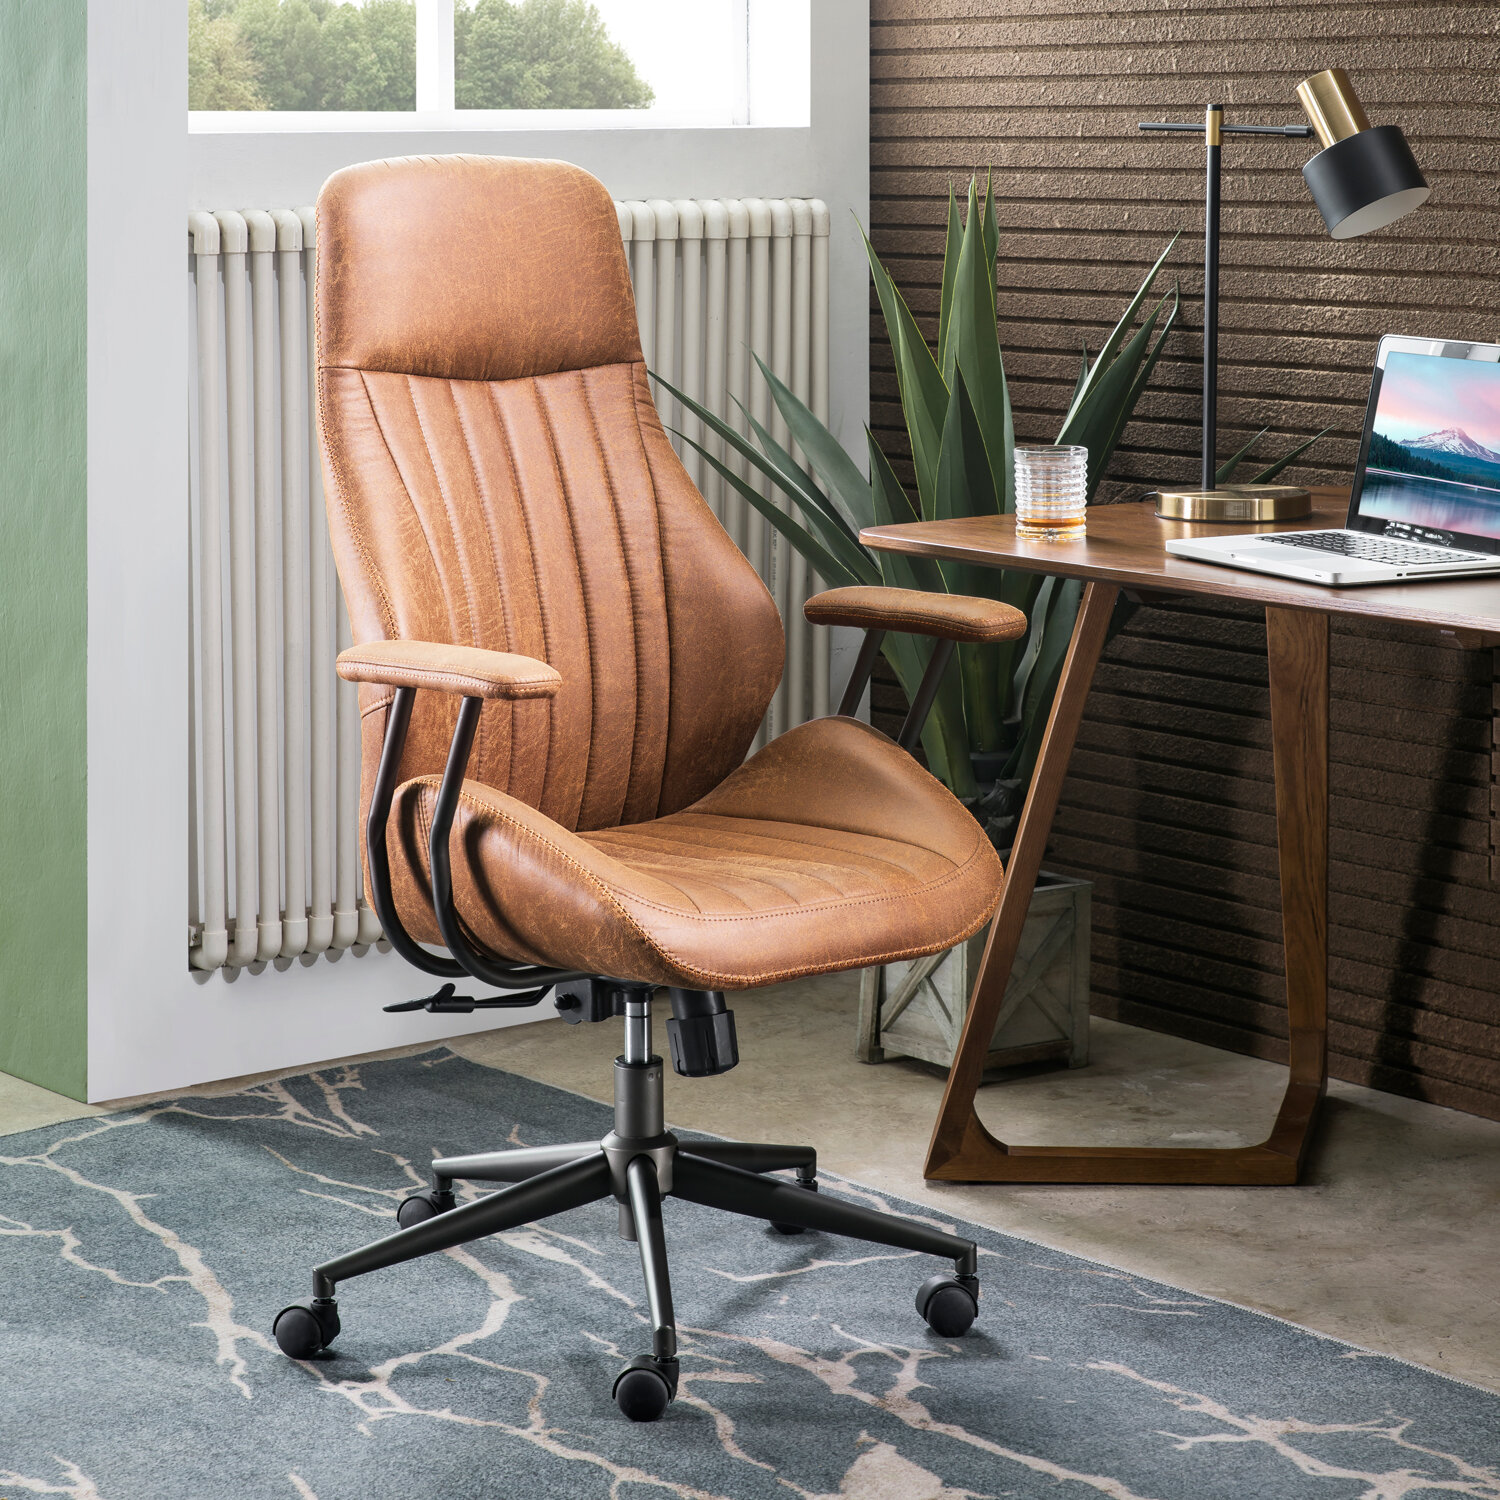 Wayfair Desk Chairs You Ll Love In 2021